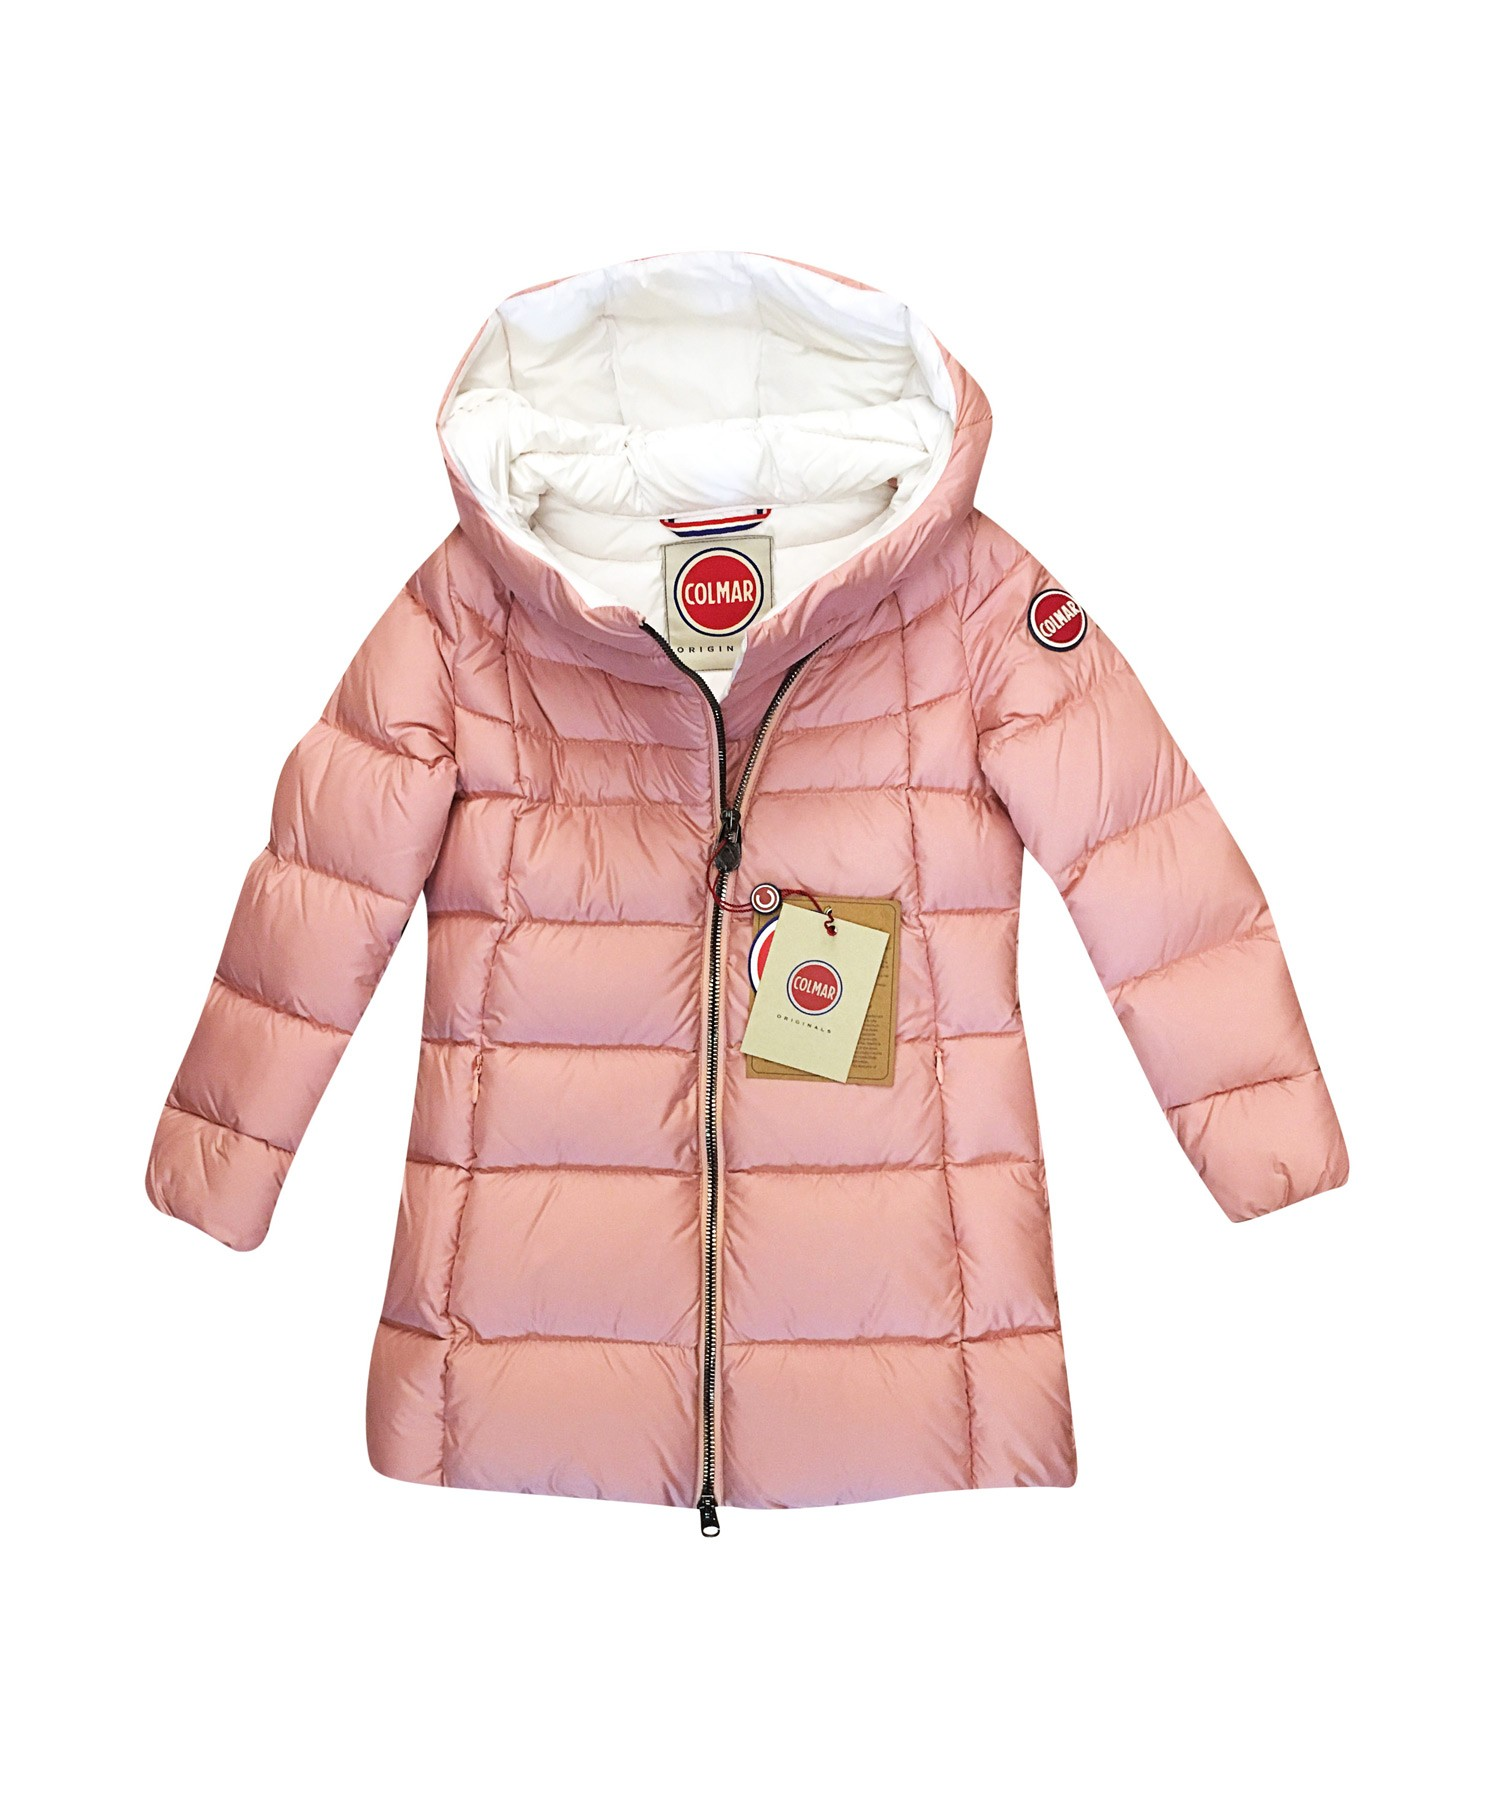 girl Colmar pink down jacket